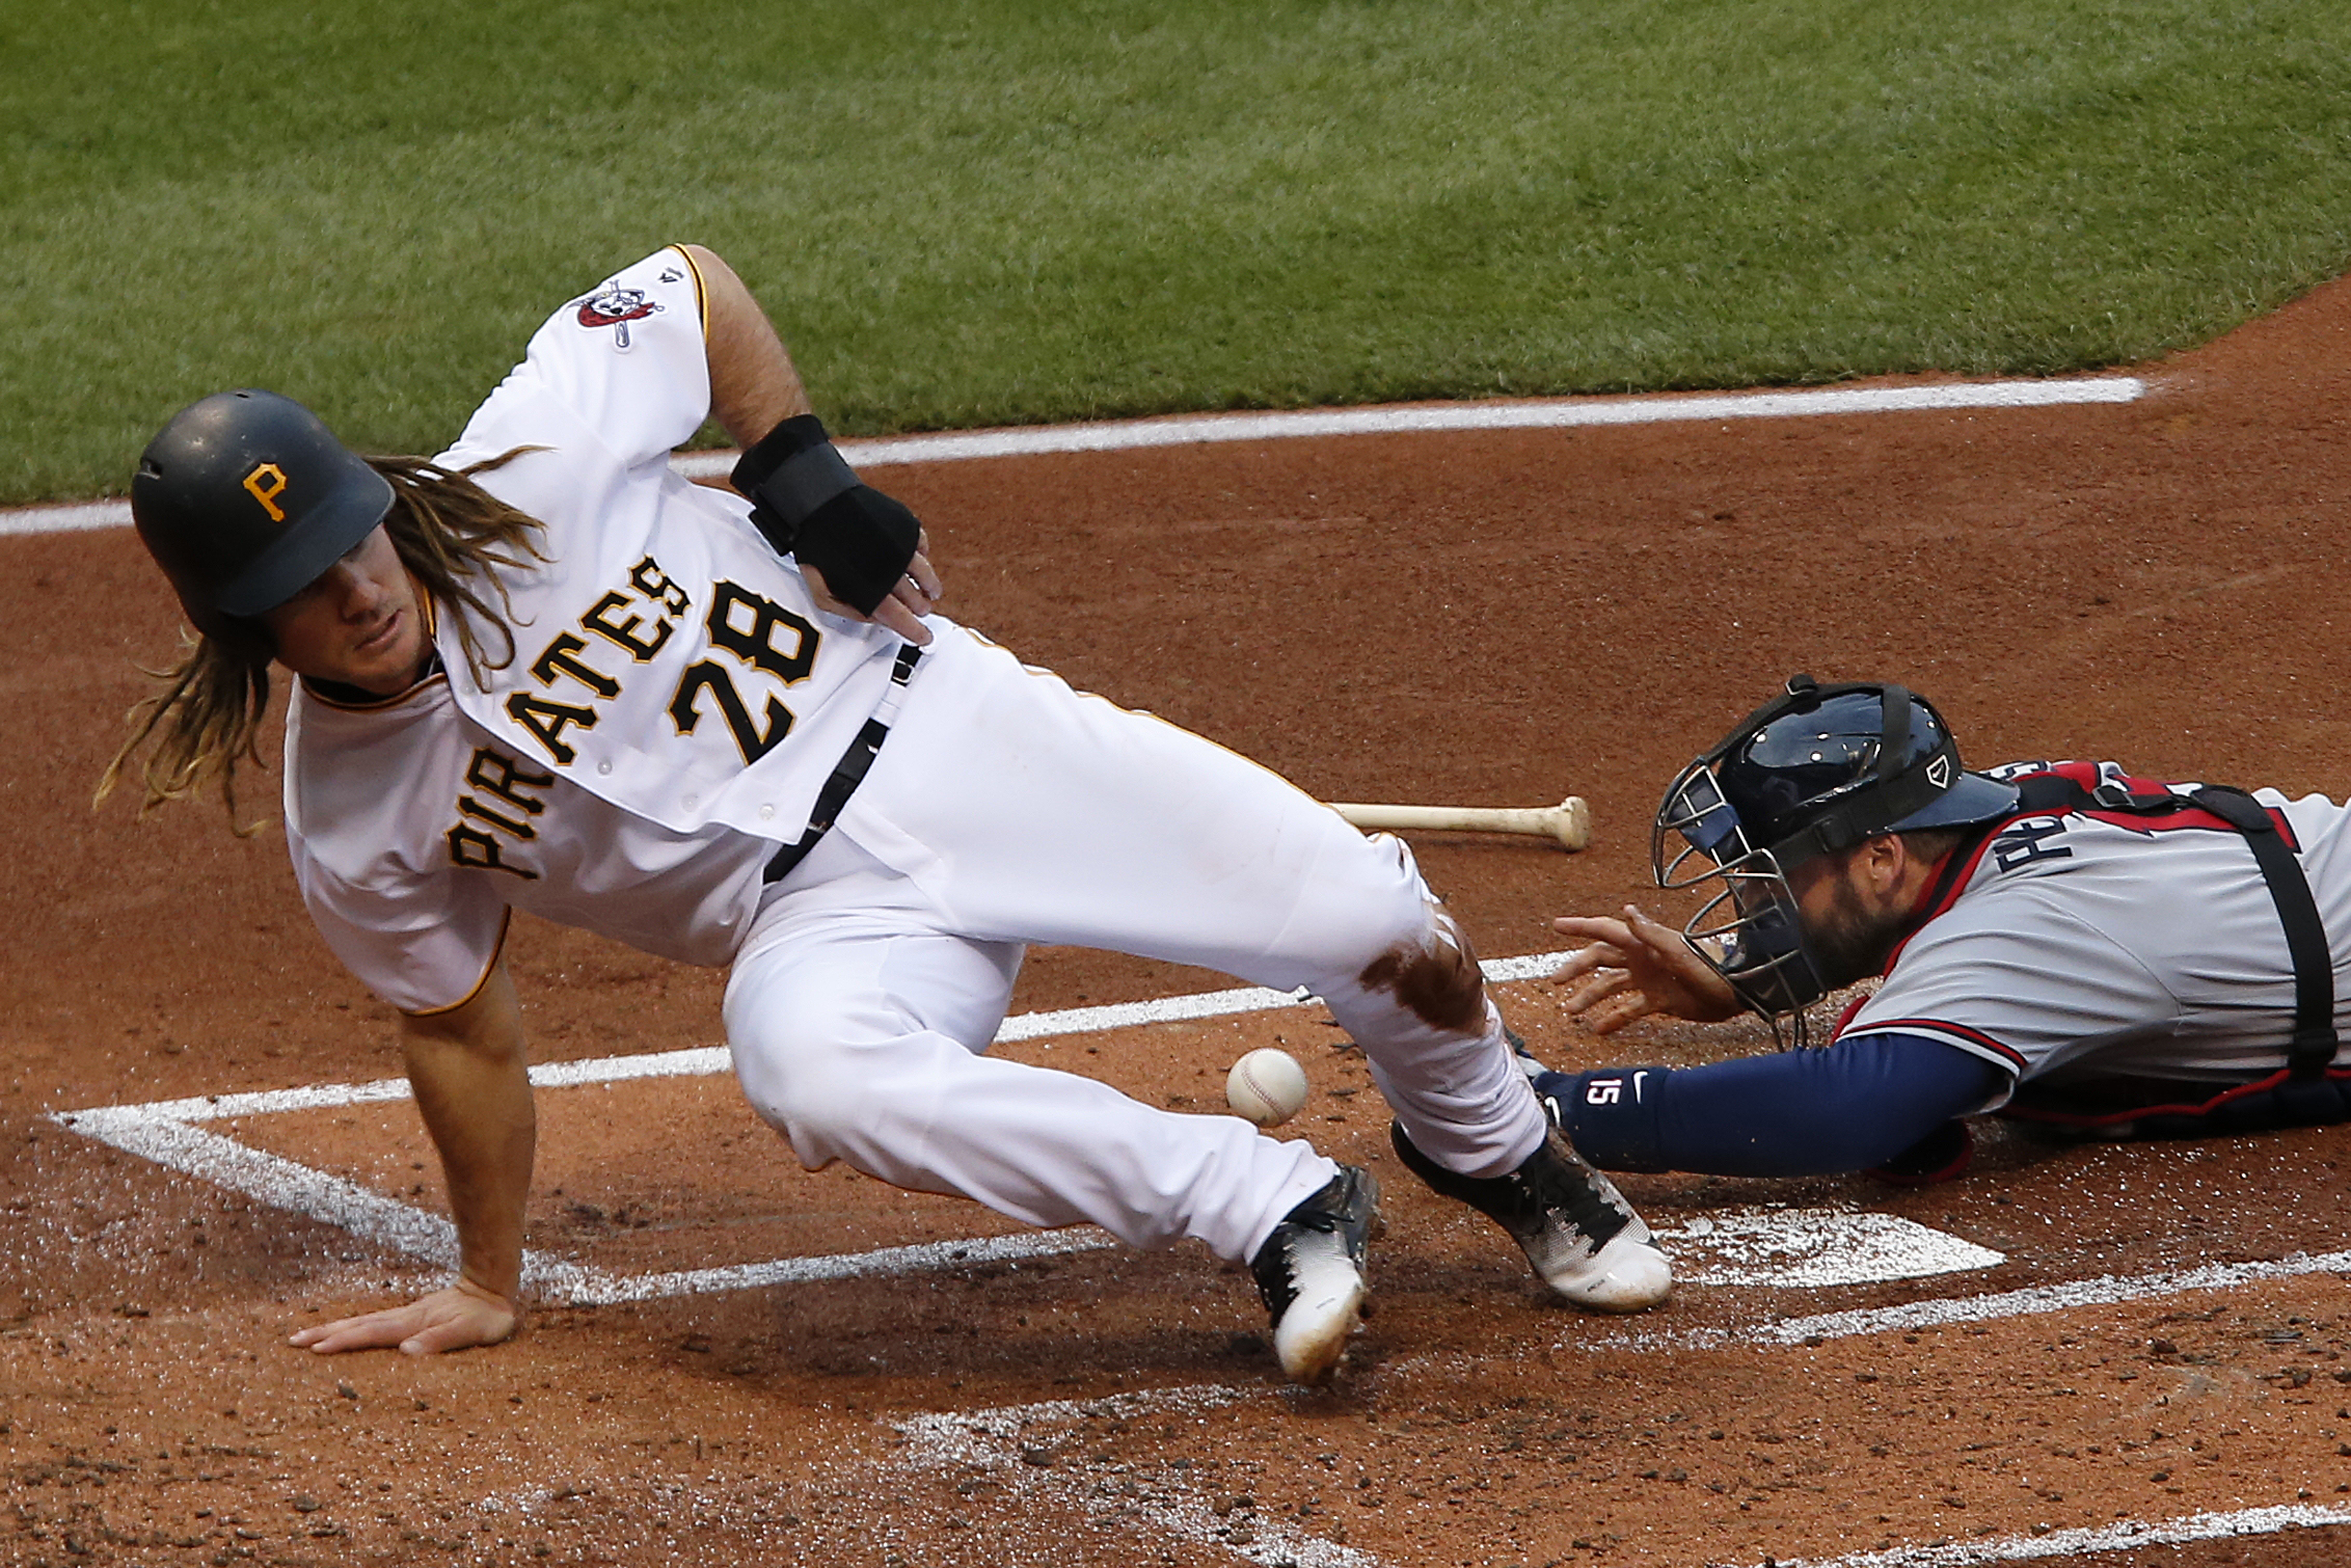 Pittsburgh Pirates' John Jaso (28) knocks the ball out of the glove of Atlanta Braves catcher A.J. Pierzynski to score on a ball hit by Jung Ho Kang during the first inning of a baseball game in Pittsburgh, Tuesday, May 17, 2016. (AP Photo/Gene J. Puskar)